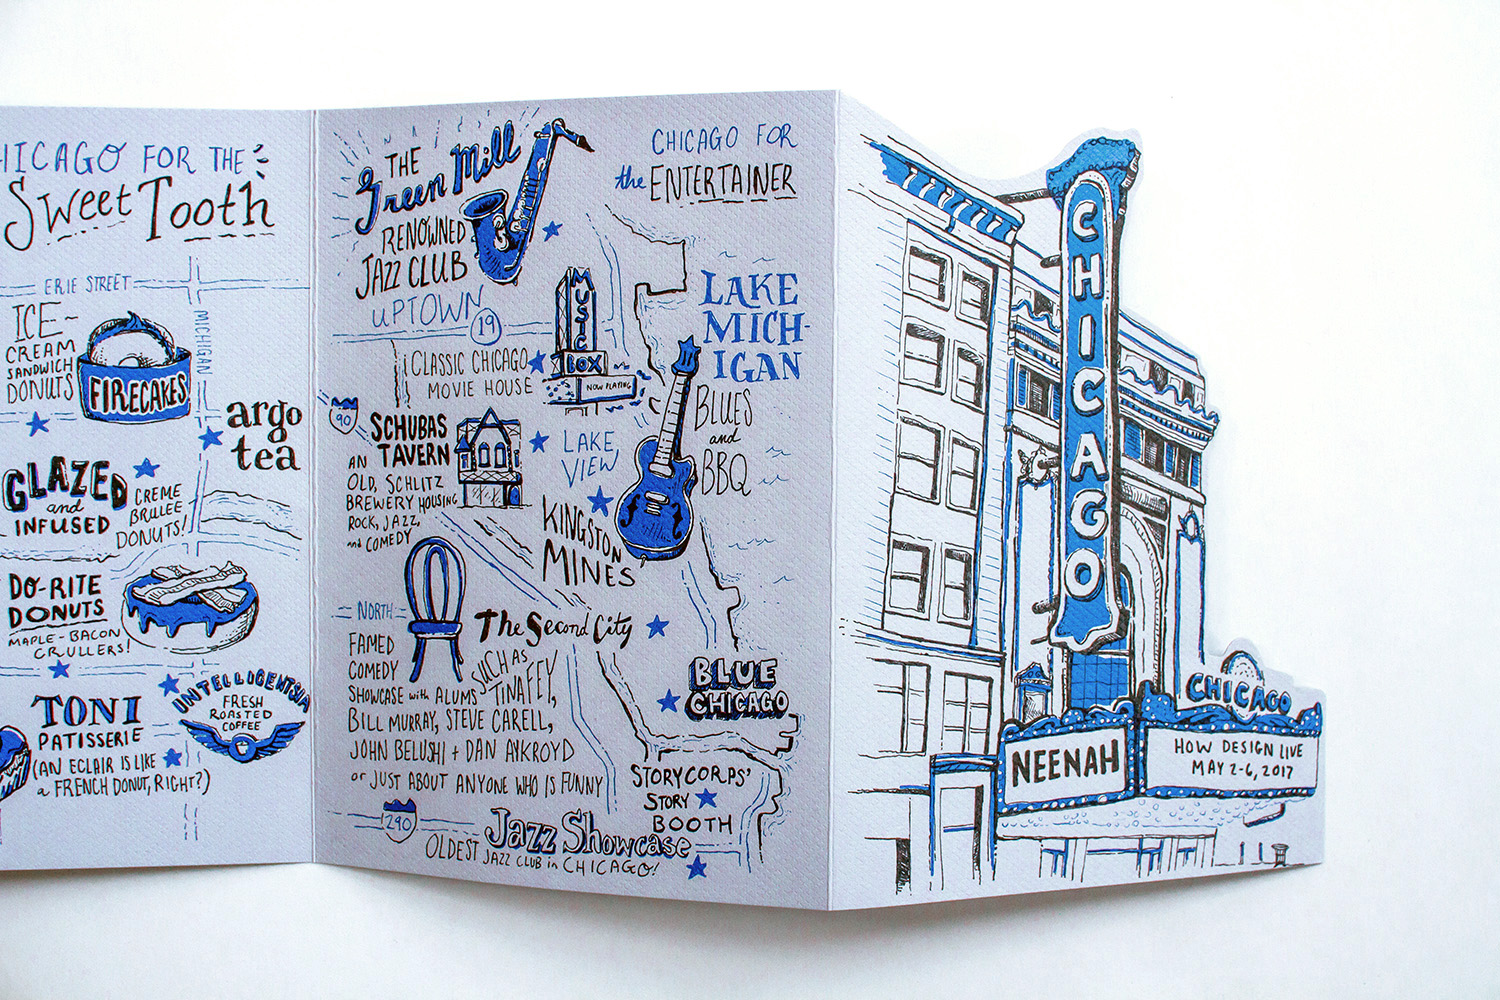 Neenah Presents Chicago illustrated maps, cover and unfolded